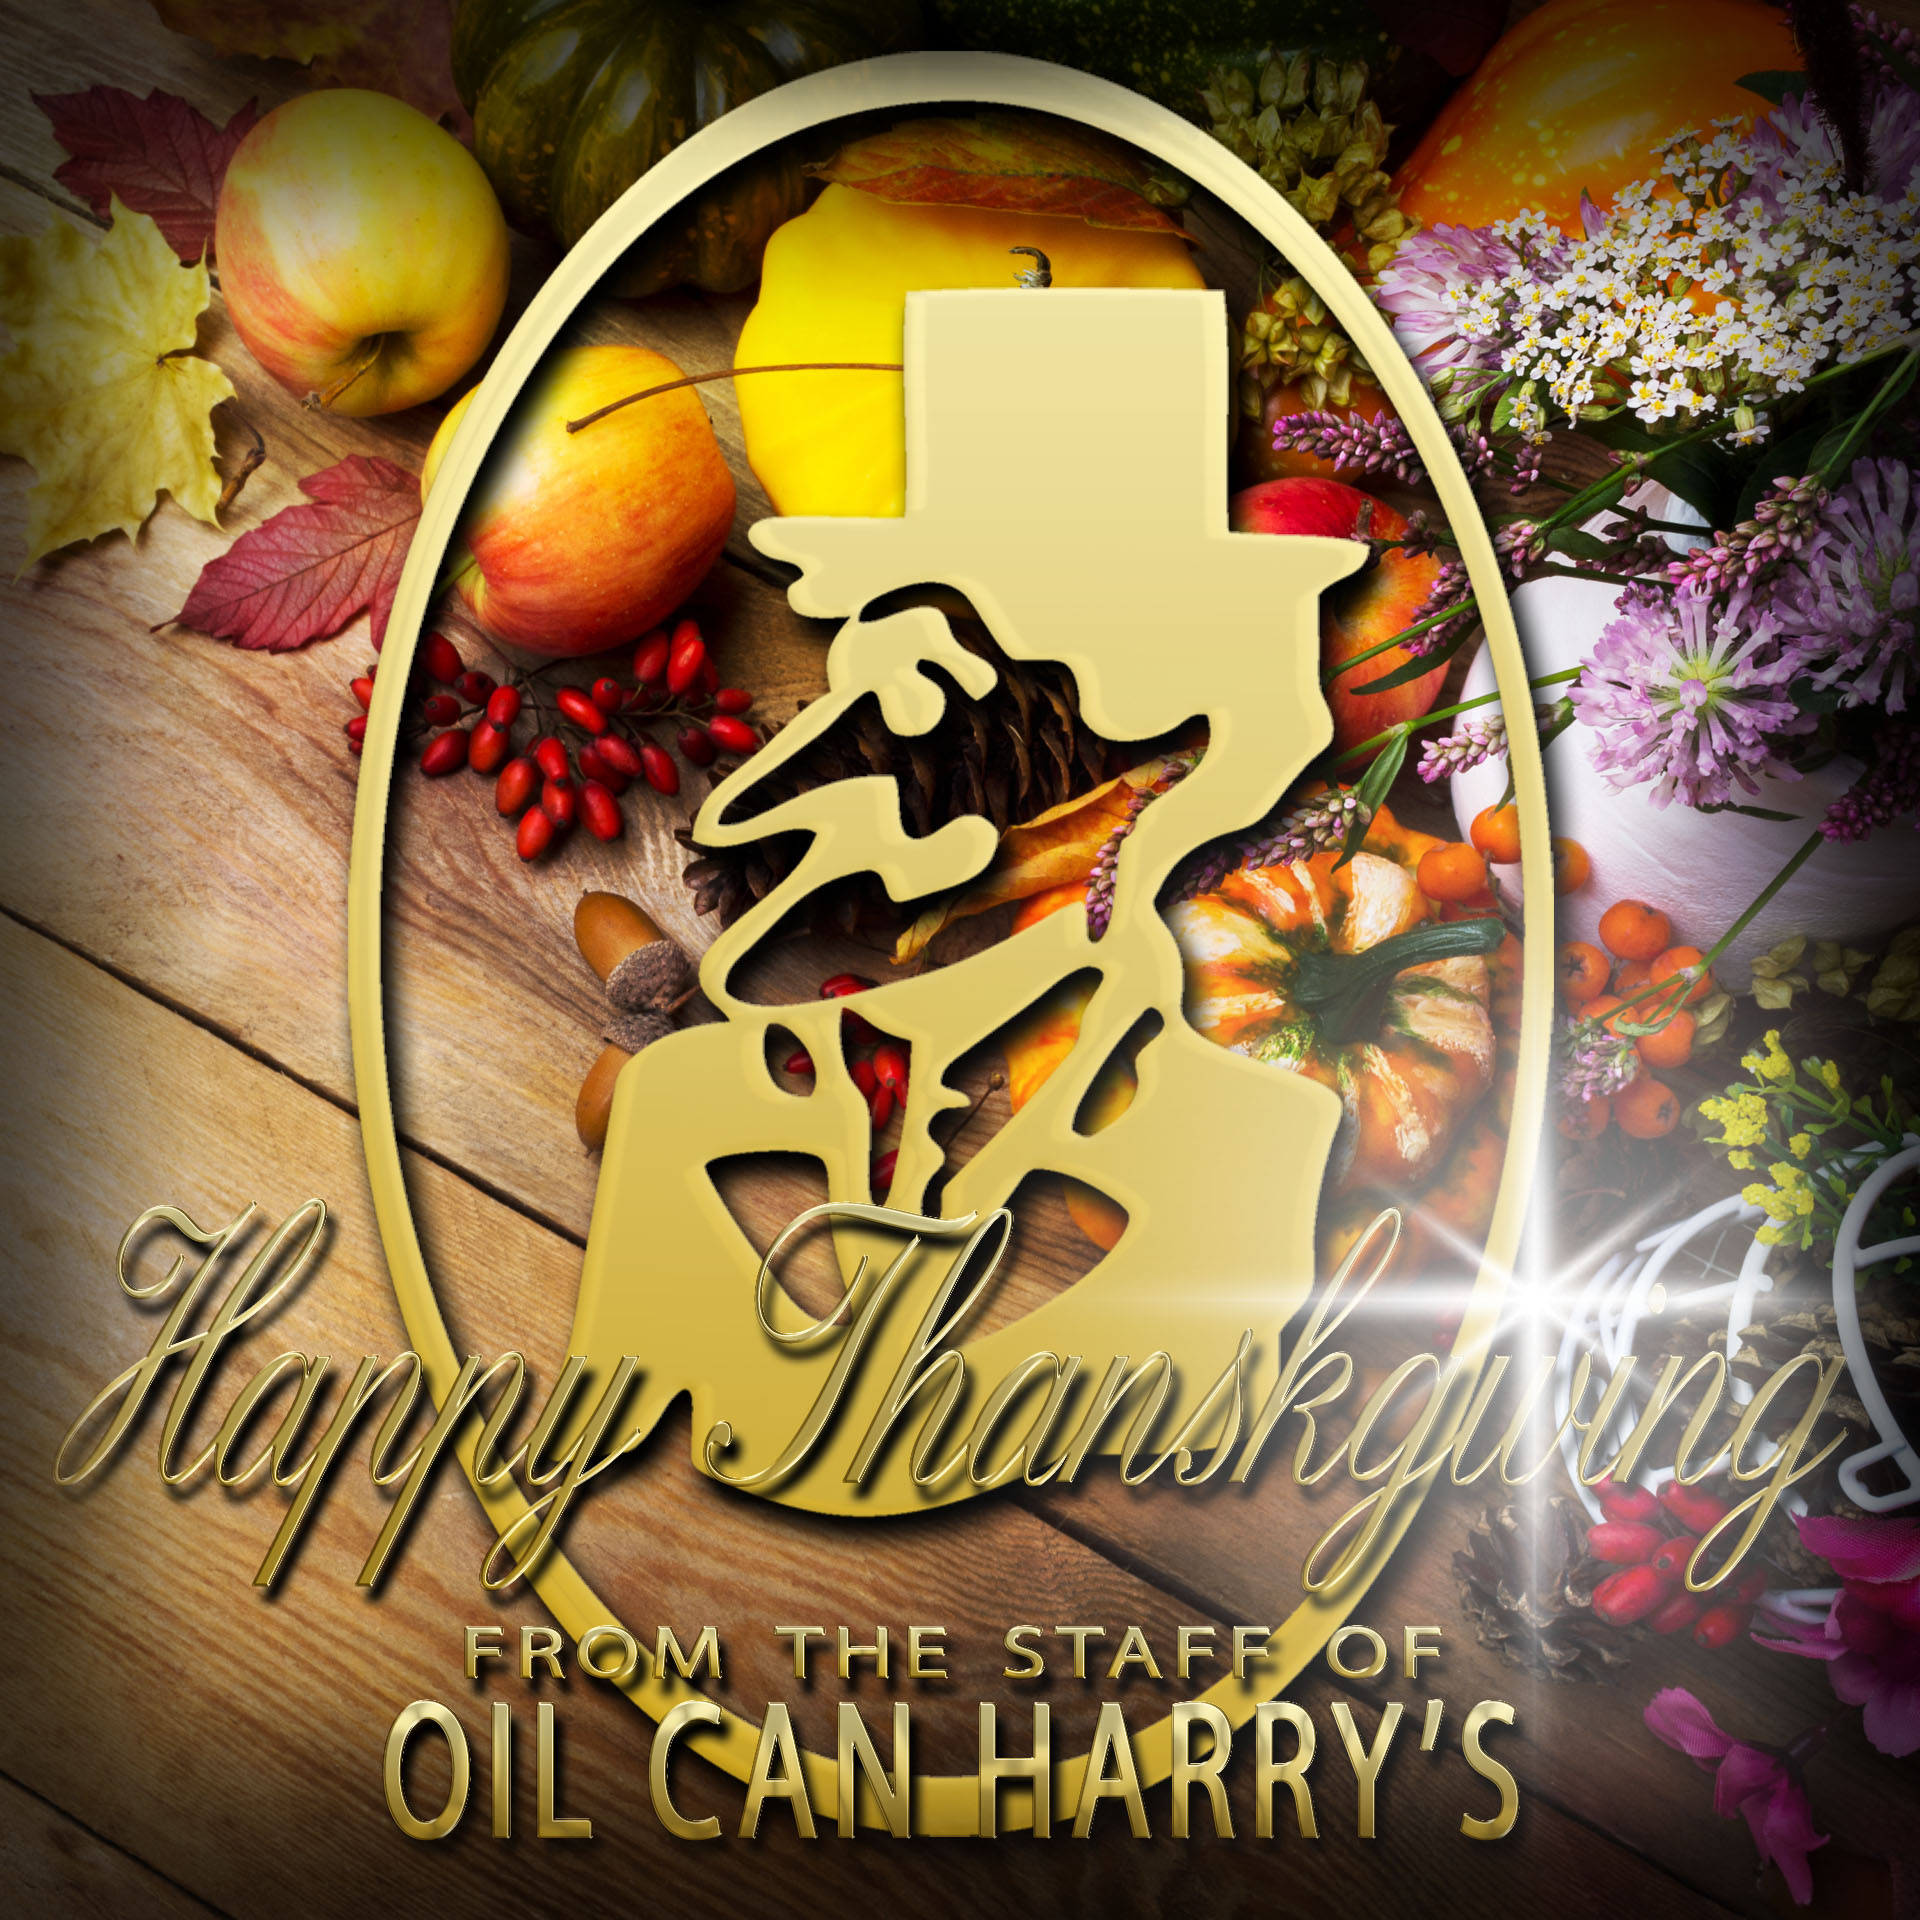 Happy Thanksgiving from The Staff of Oil Can Harry's!